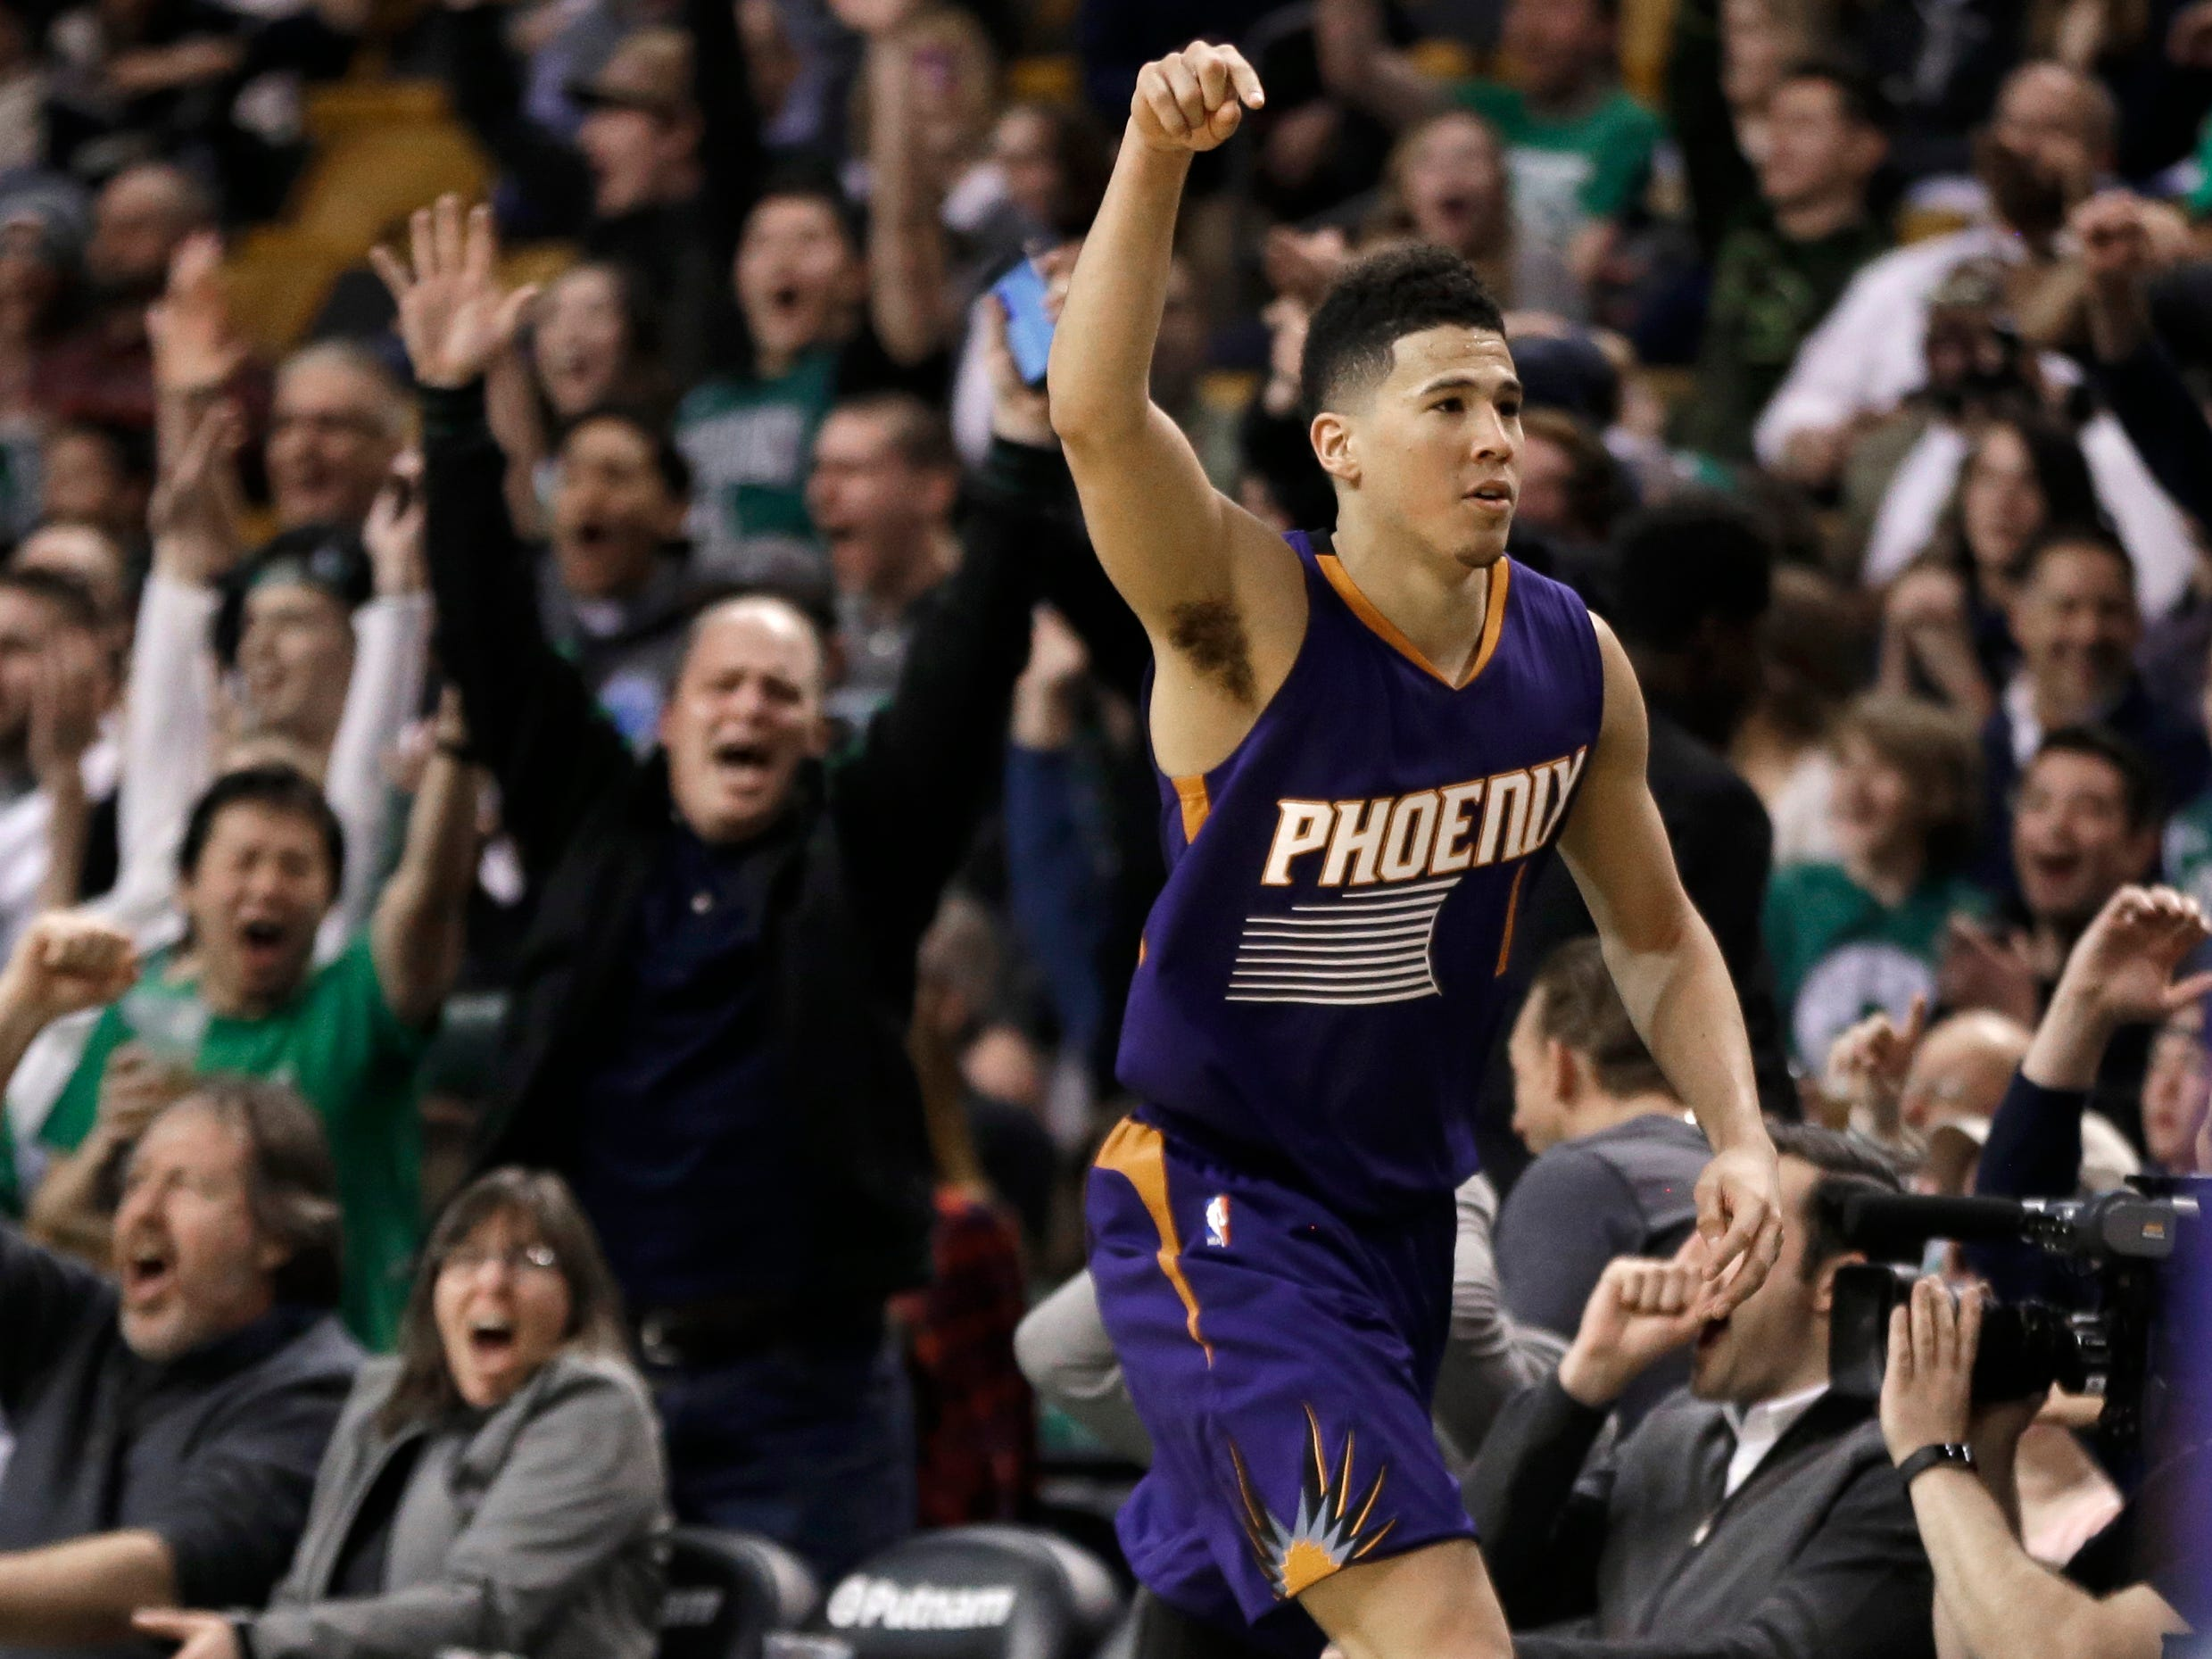 2016-17 | Suns MVP: Devin Booker. Booker's 70-point game was an unforgettable moment in a forgettable season. So what if Coach Earl Watson did everything in his power to help the rising star hit the historic number?